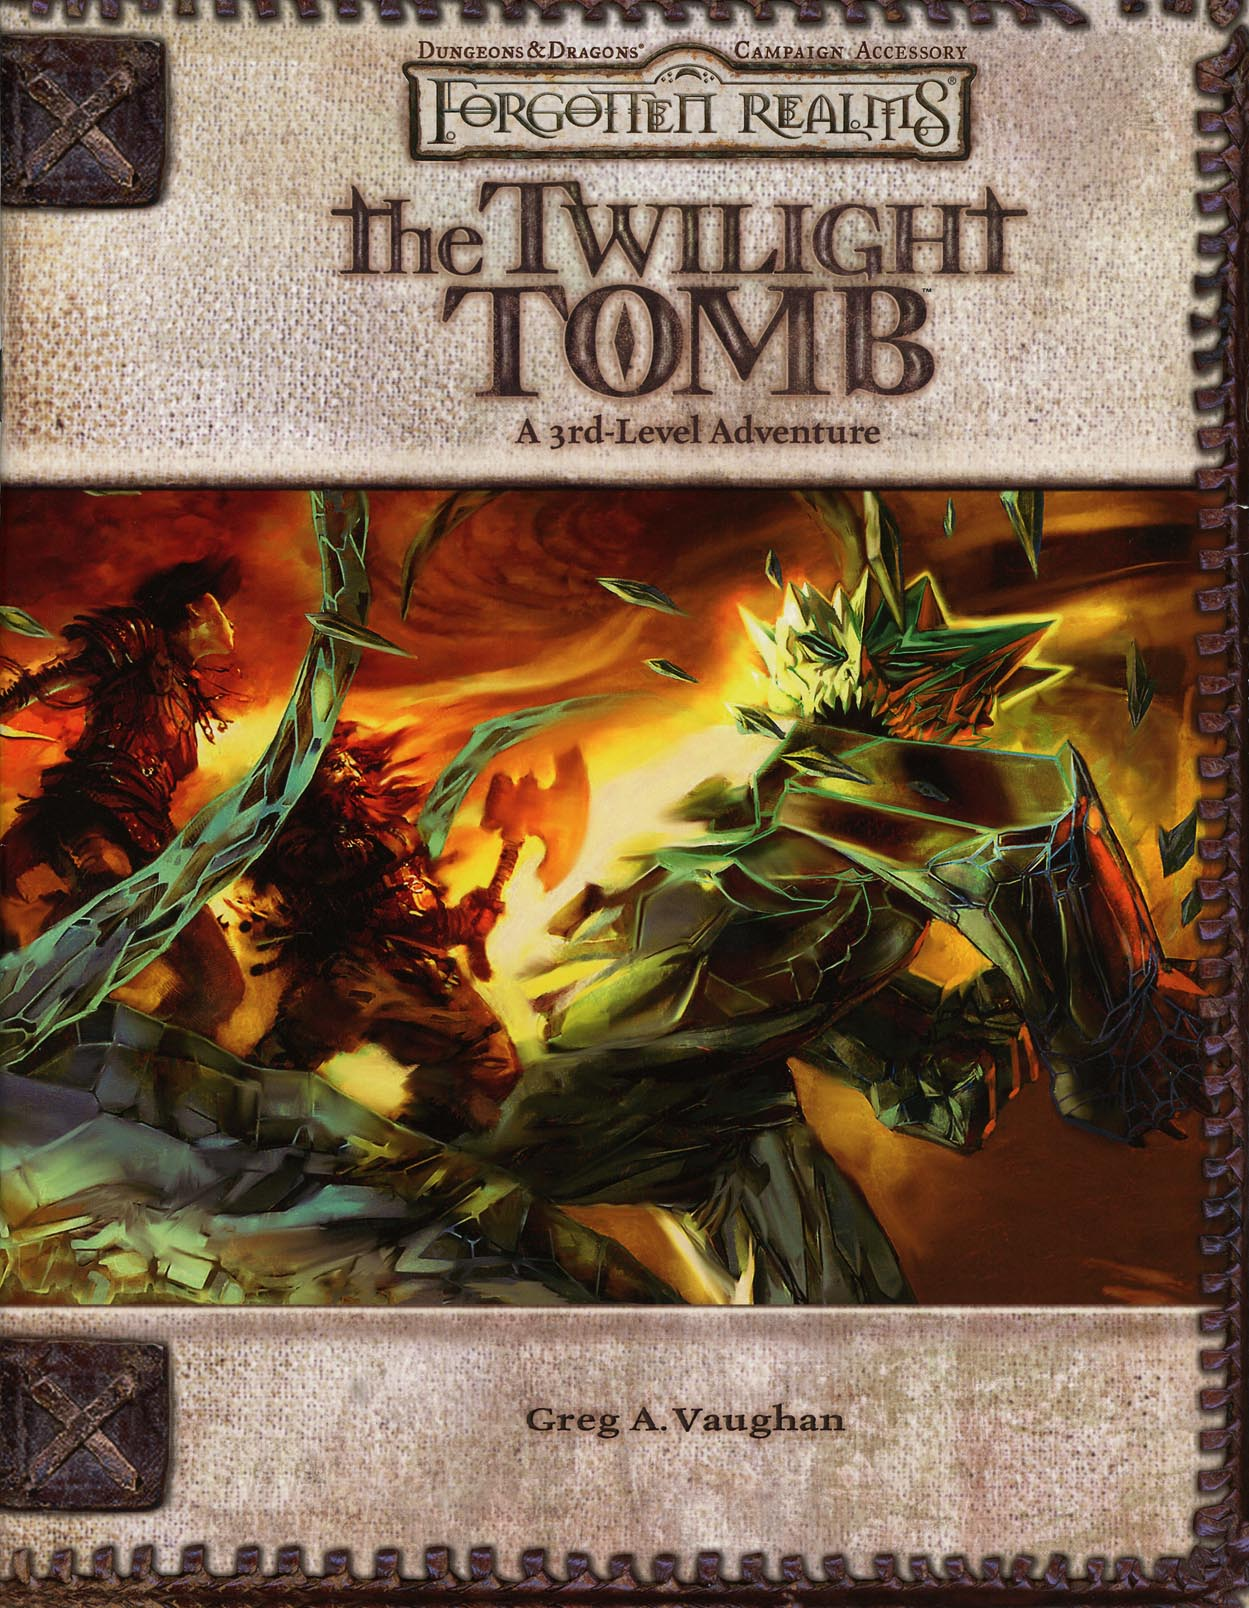 File:The Twilight Tomb.jpg